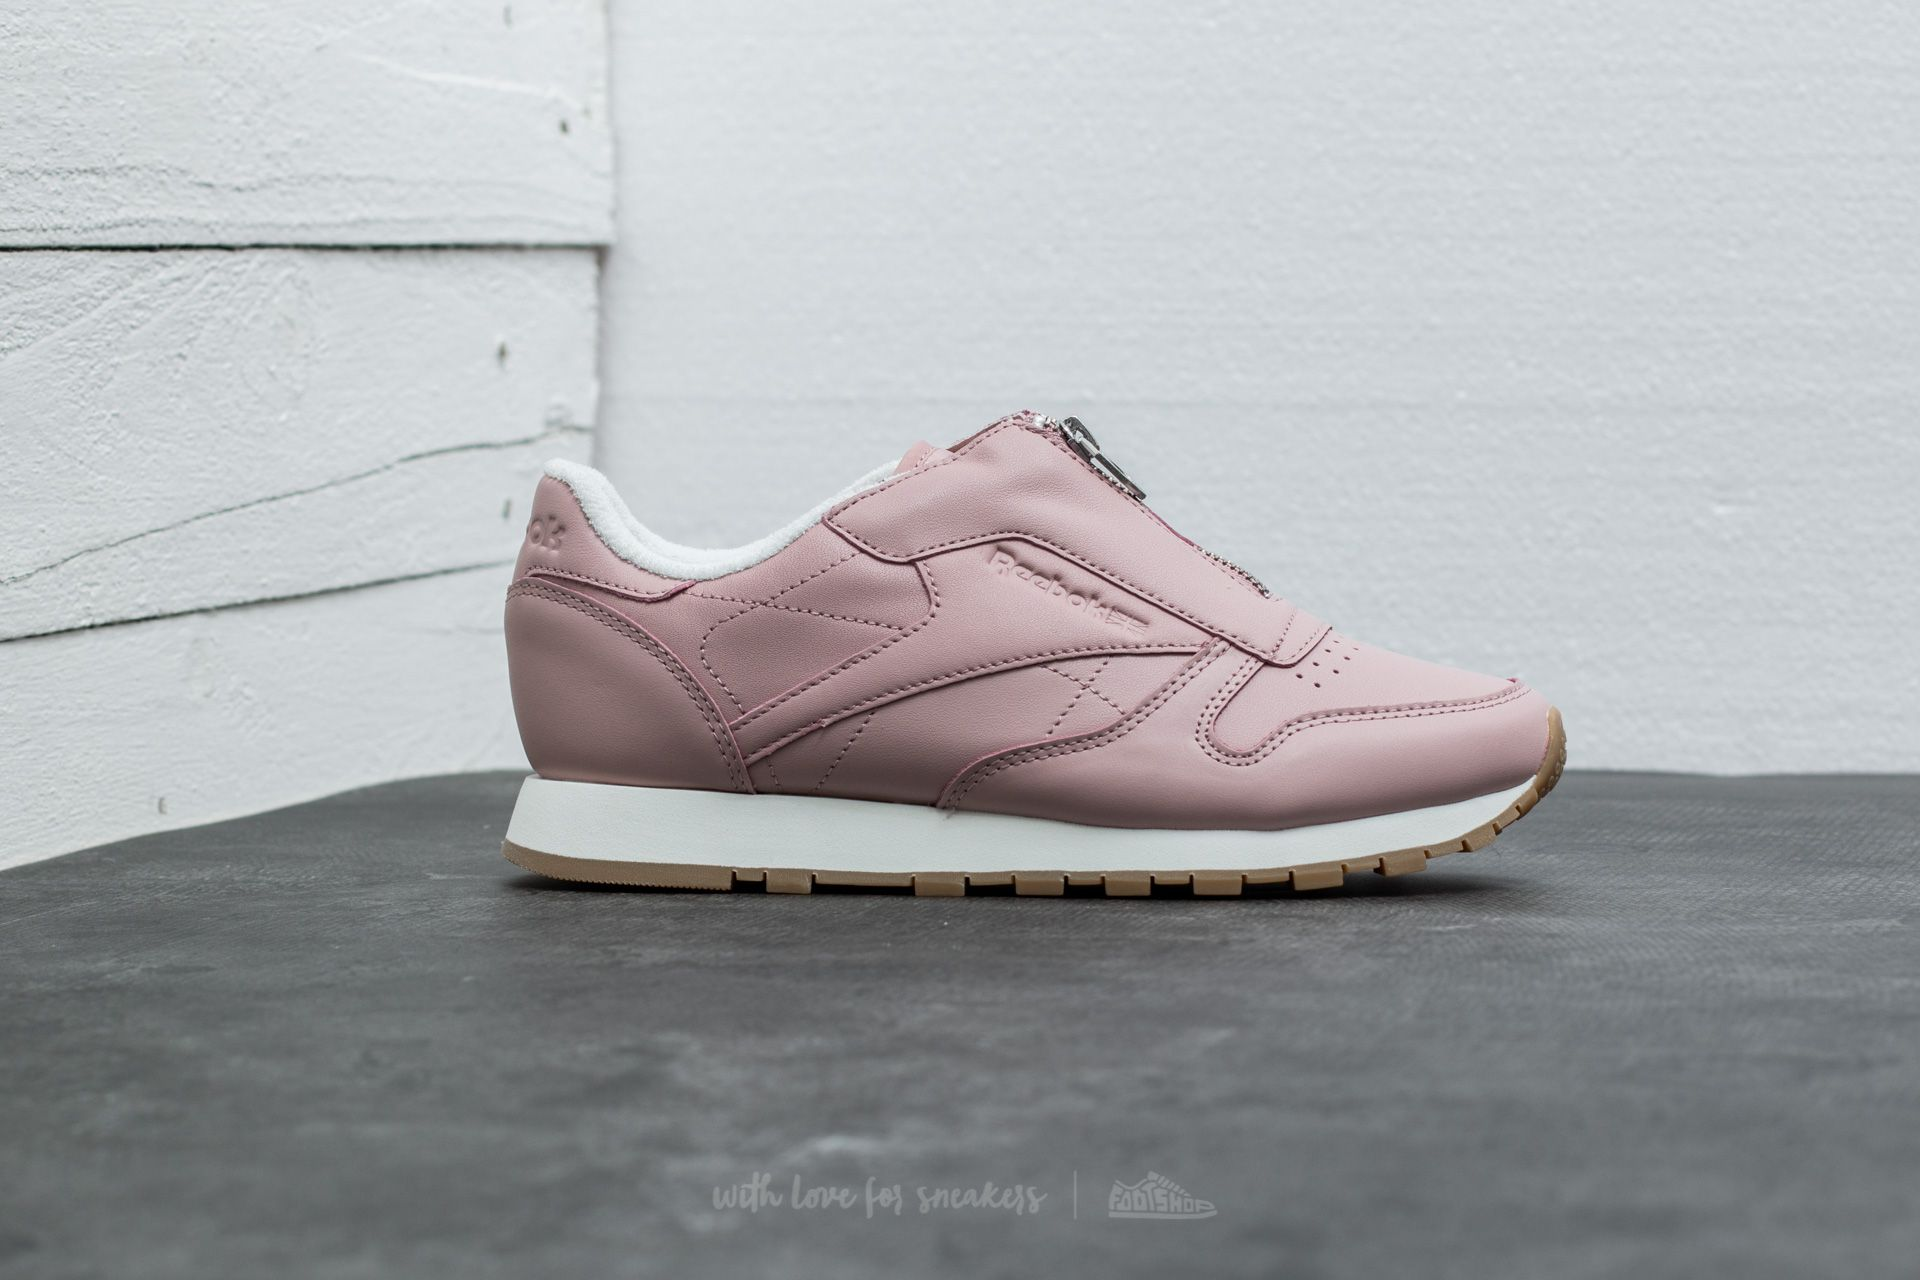 d60fcd8f080b Reebok Classic Leather Zip Shell Pink  Chalk  Silver at a great price 44 €